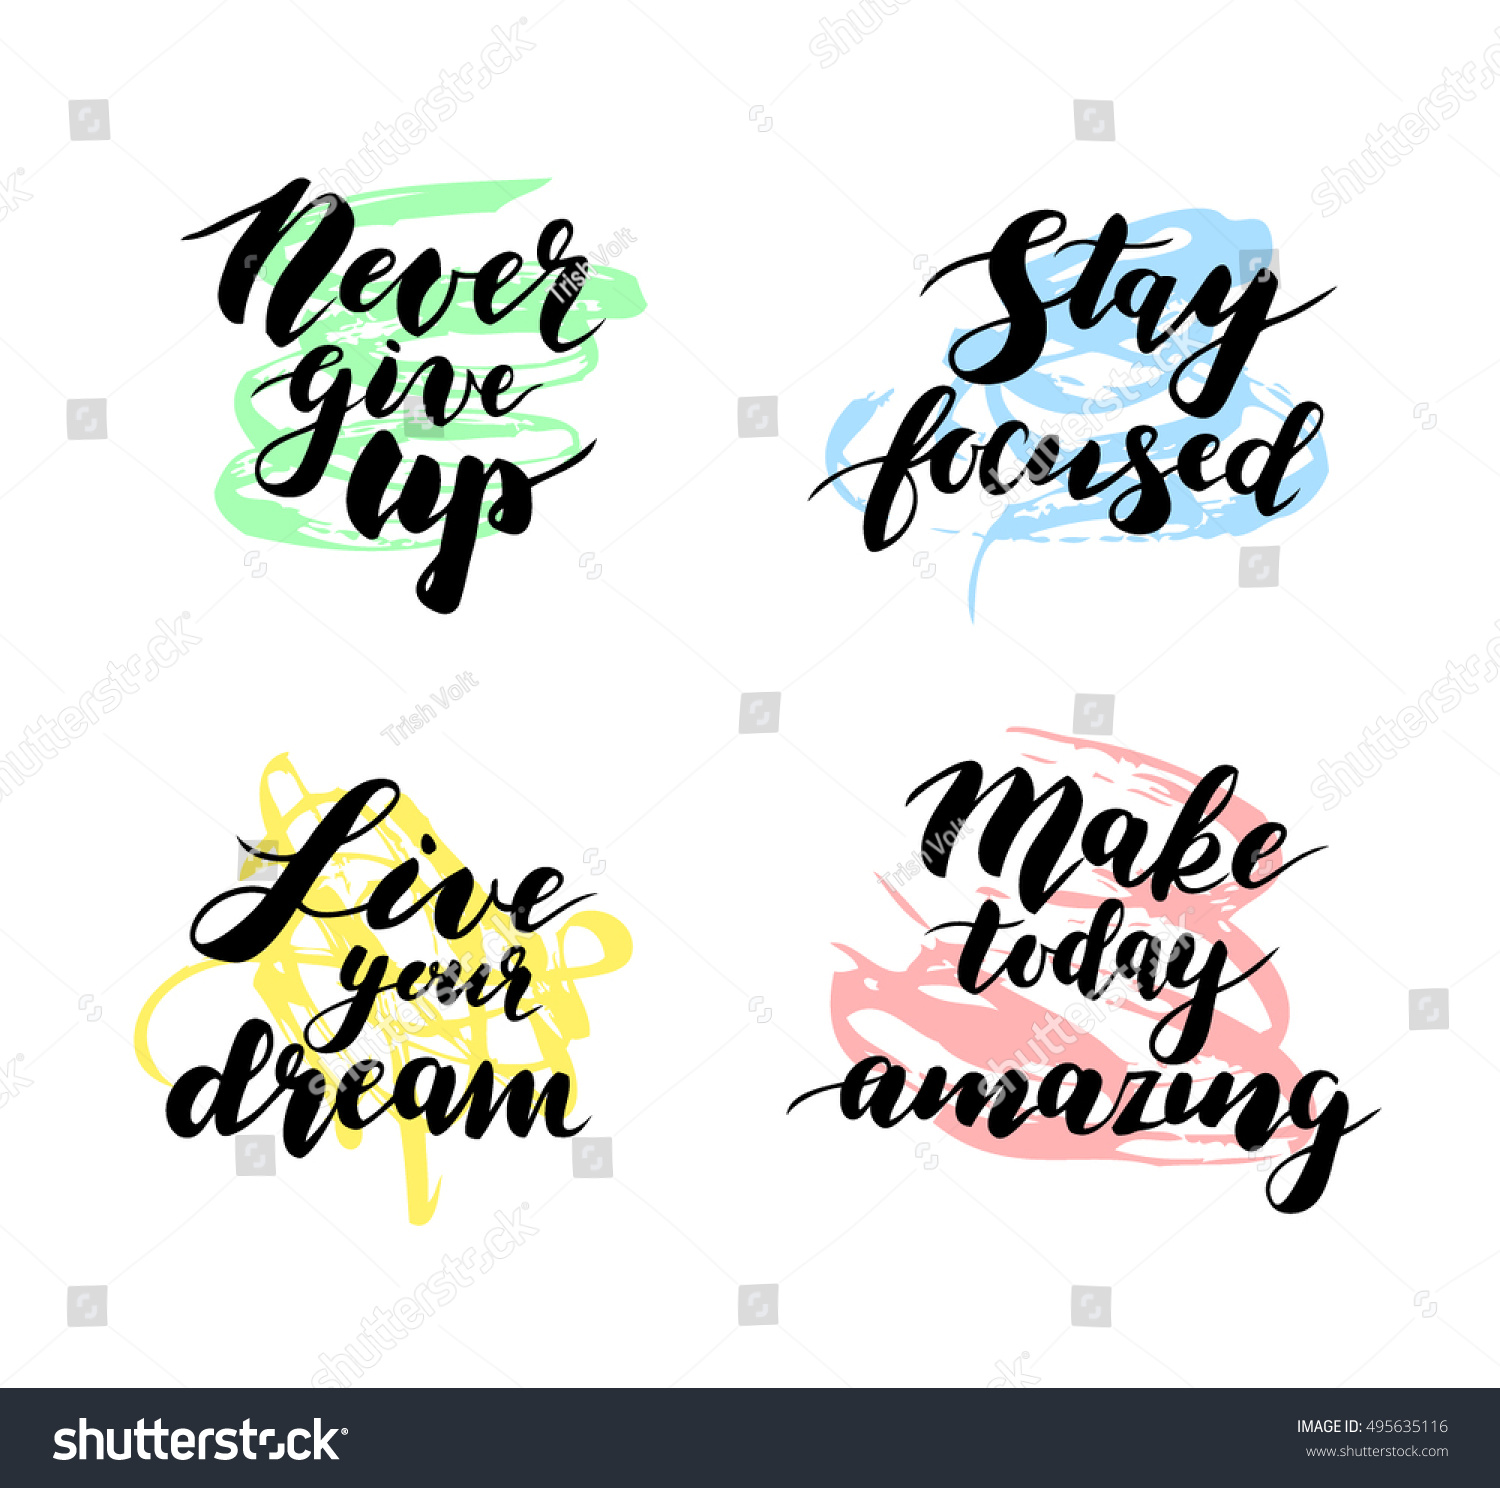 Simple Inspirational Quotes Amazing Four Motivational Inspirational Quotes Modern Calligraphy Stock